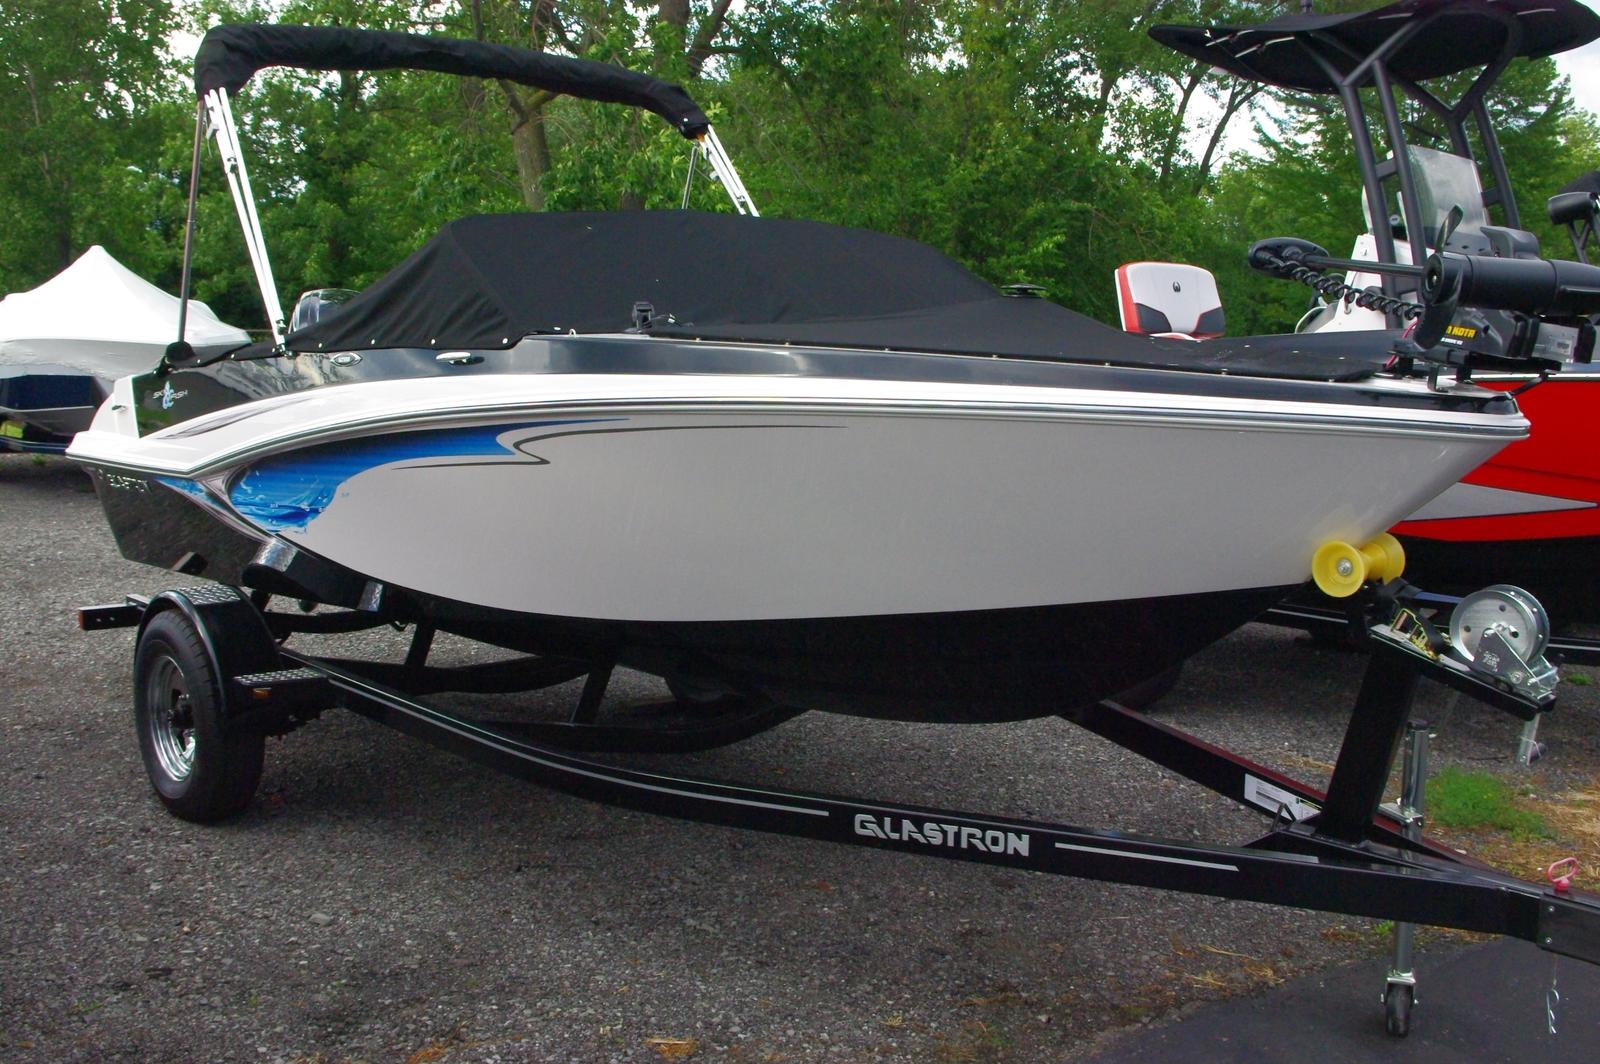 Glastron GTSF 180 Fish and Ski